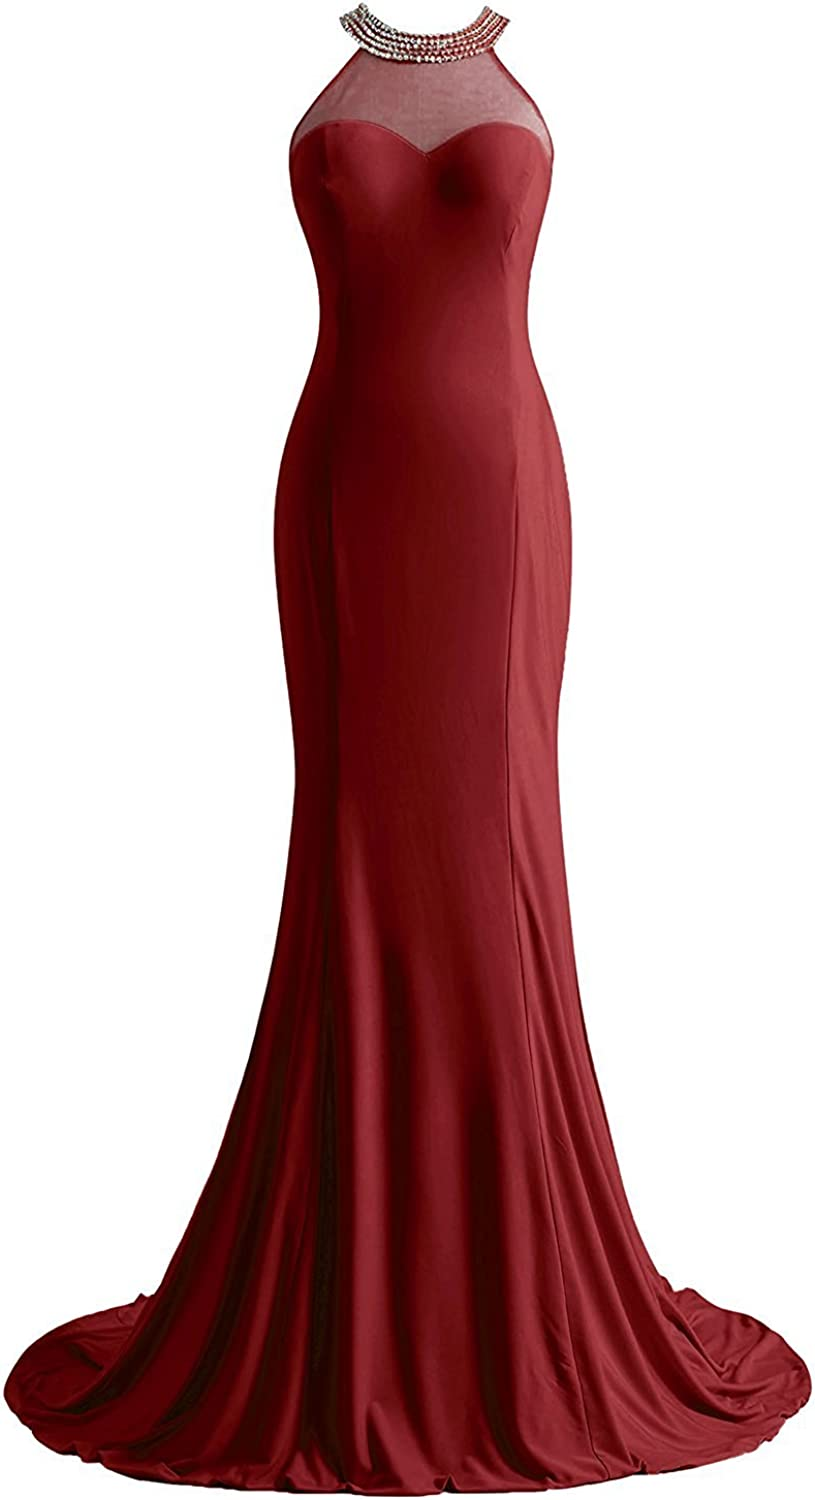 DianSheng Women's Prom Dresses Spandex Scoop Mermaid Beaded Evening Dress CK23